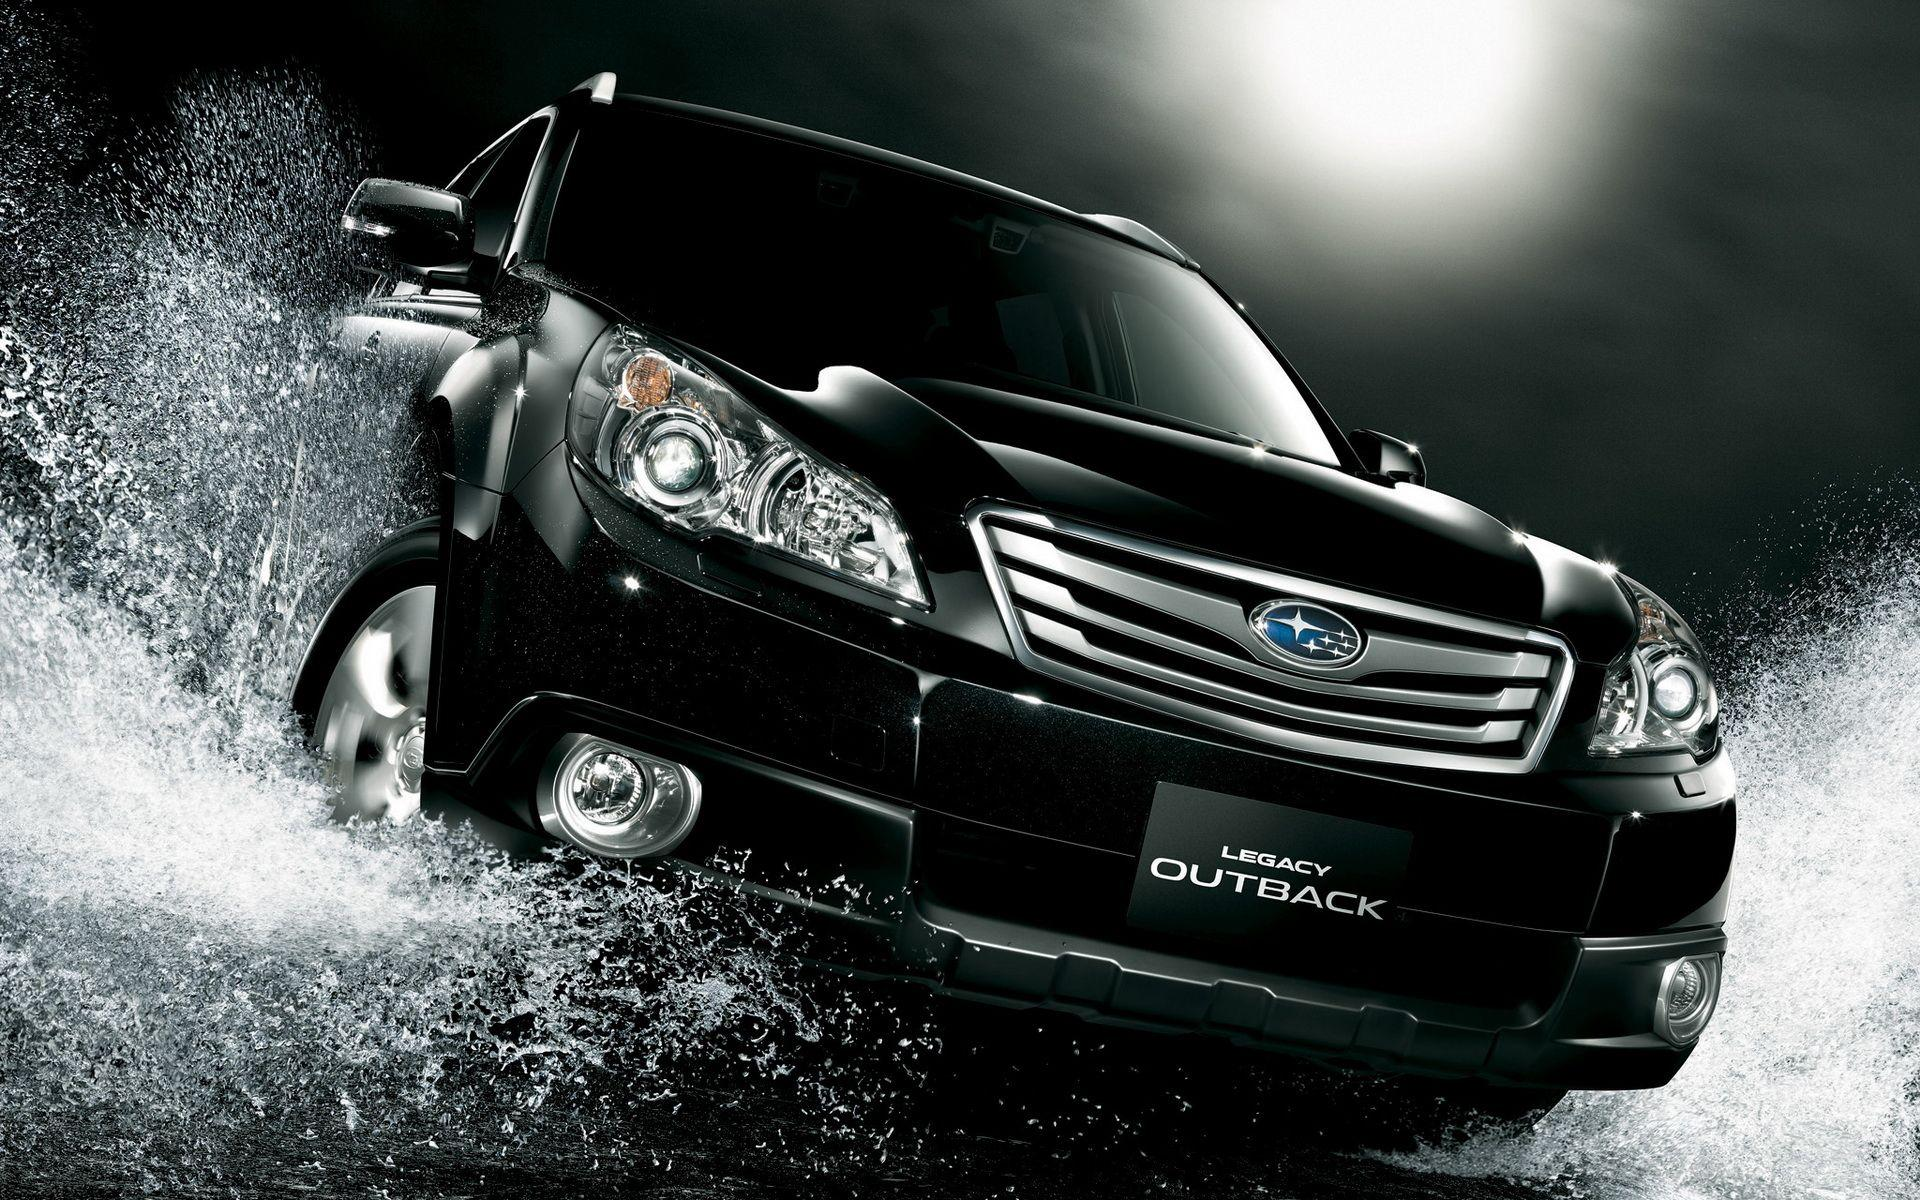 Subaru Legacy Outback 3.6r wallpapers and image